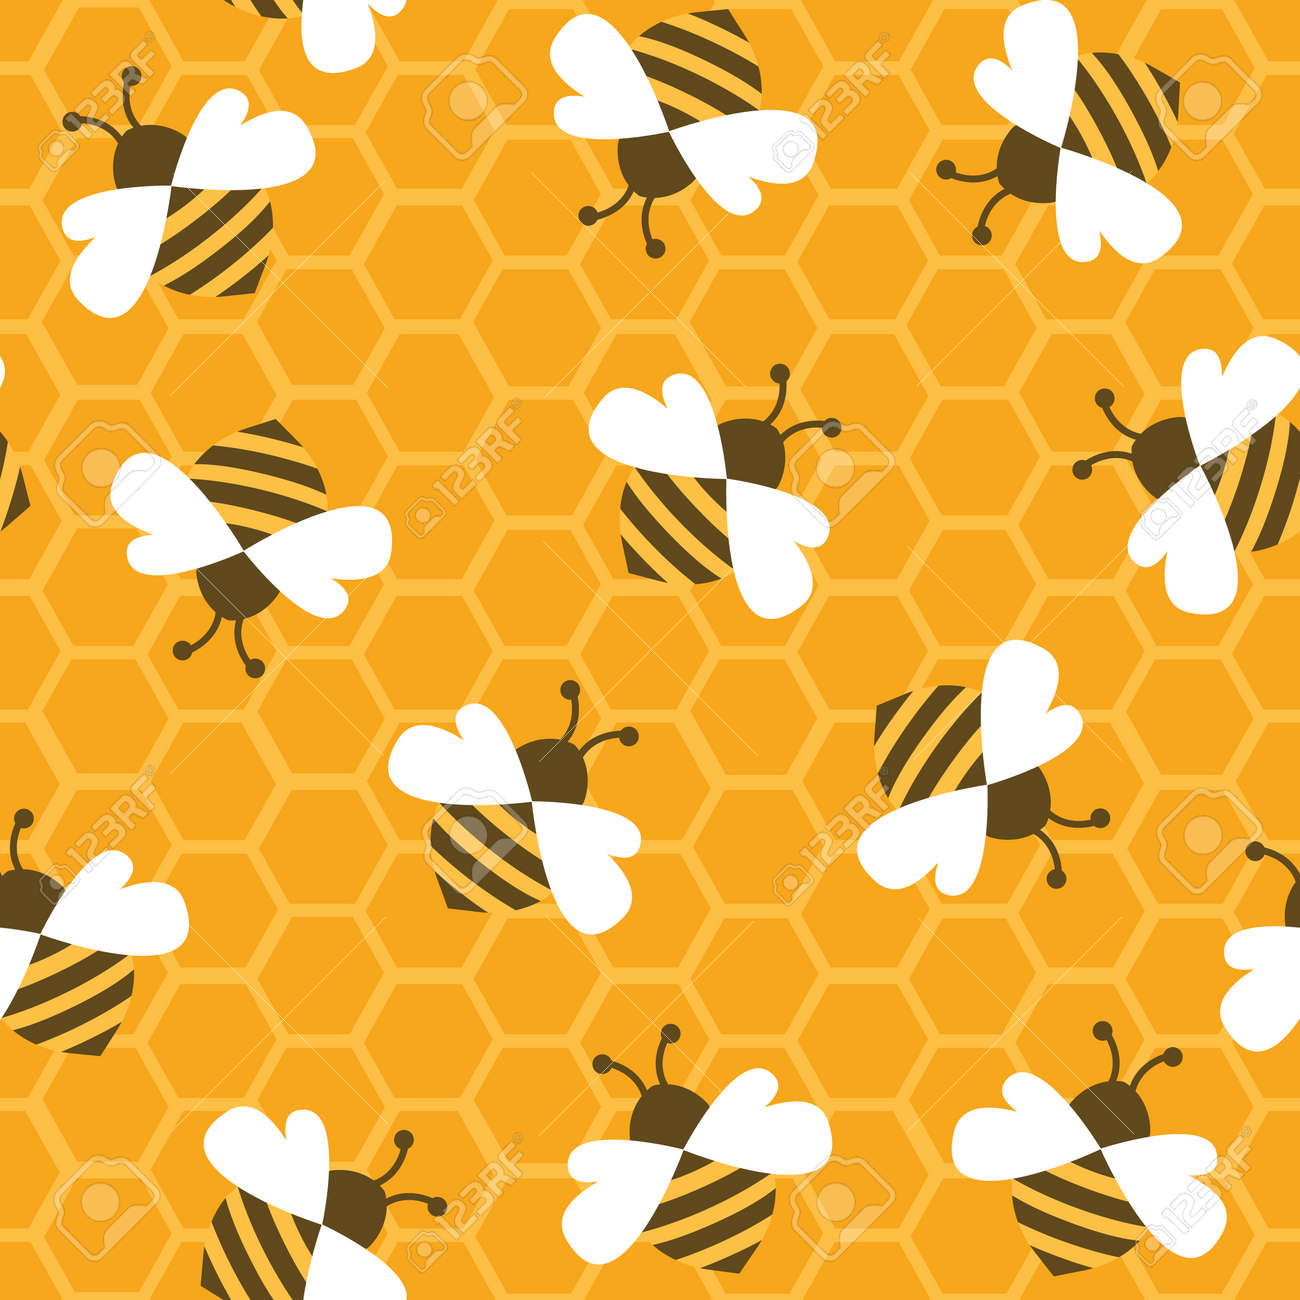 Bee with honey. Seamless pattern. Vector illustration. - 57191896